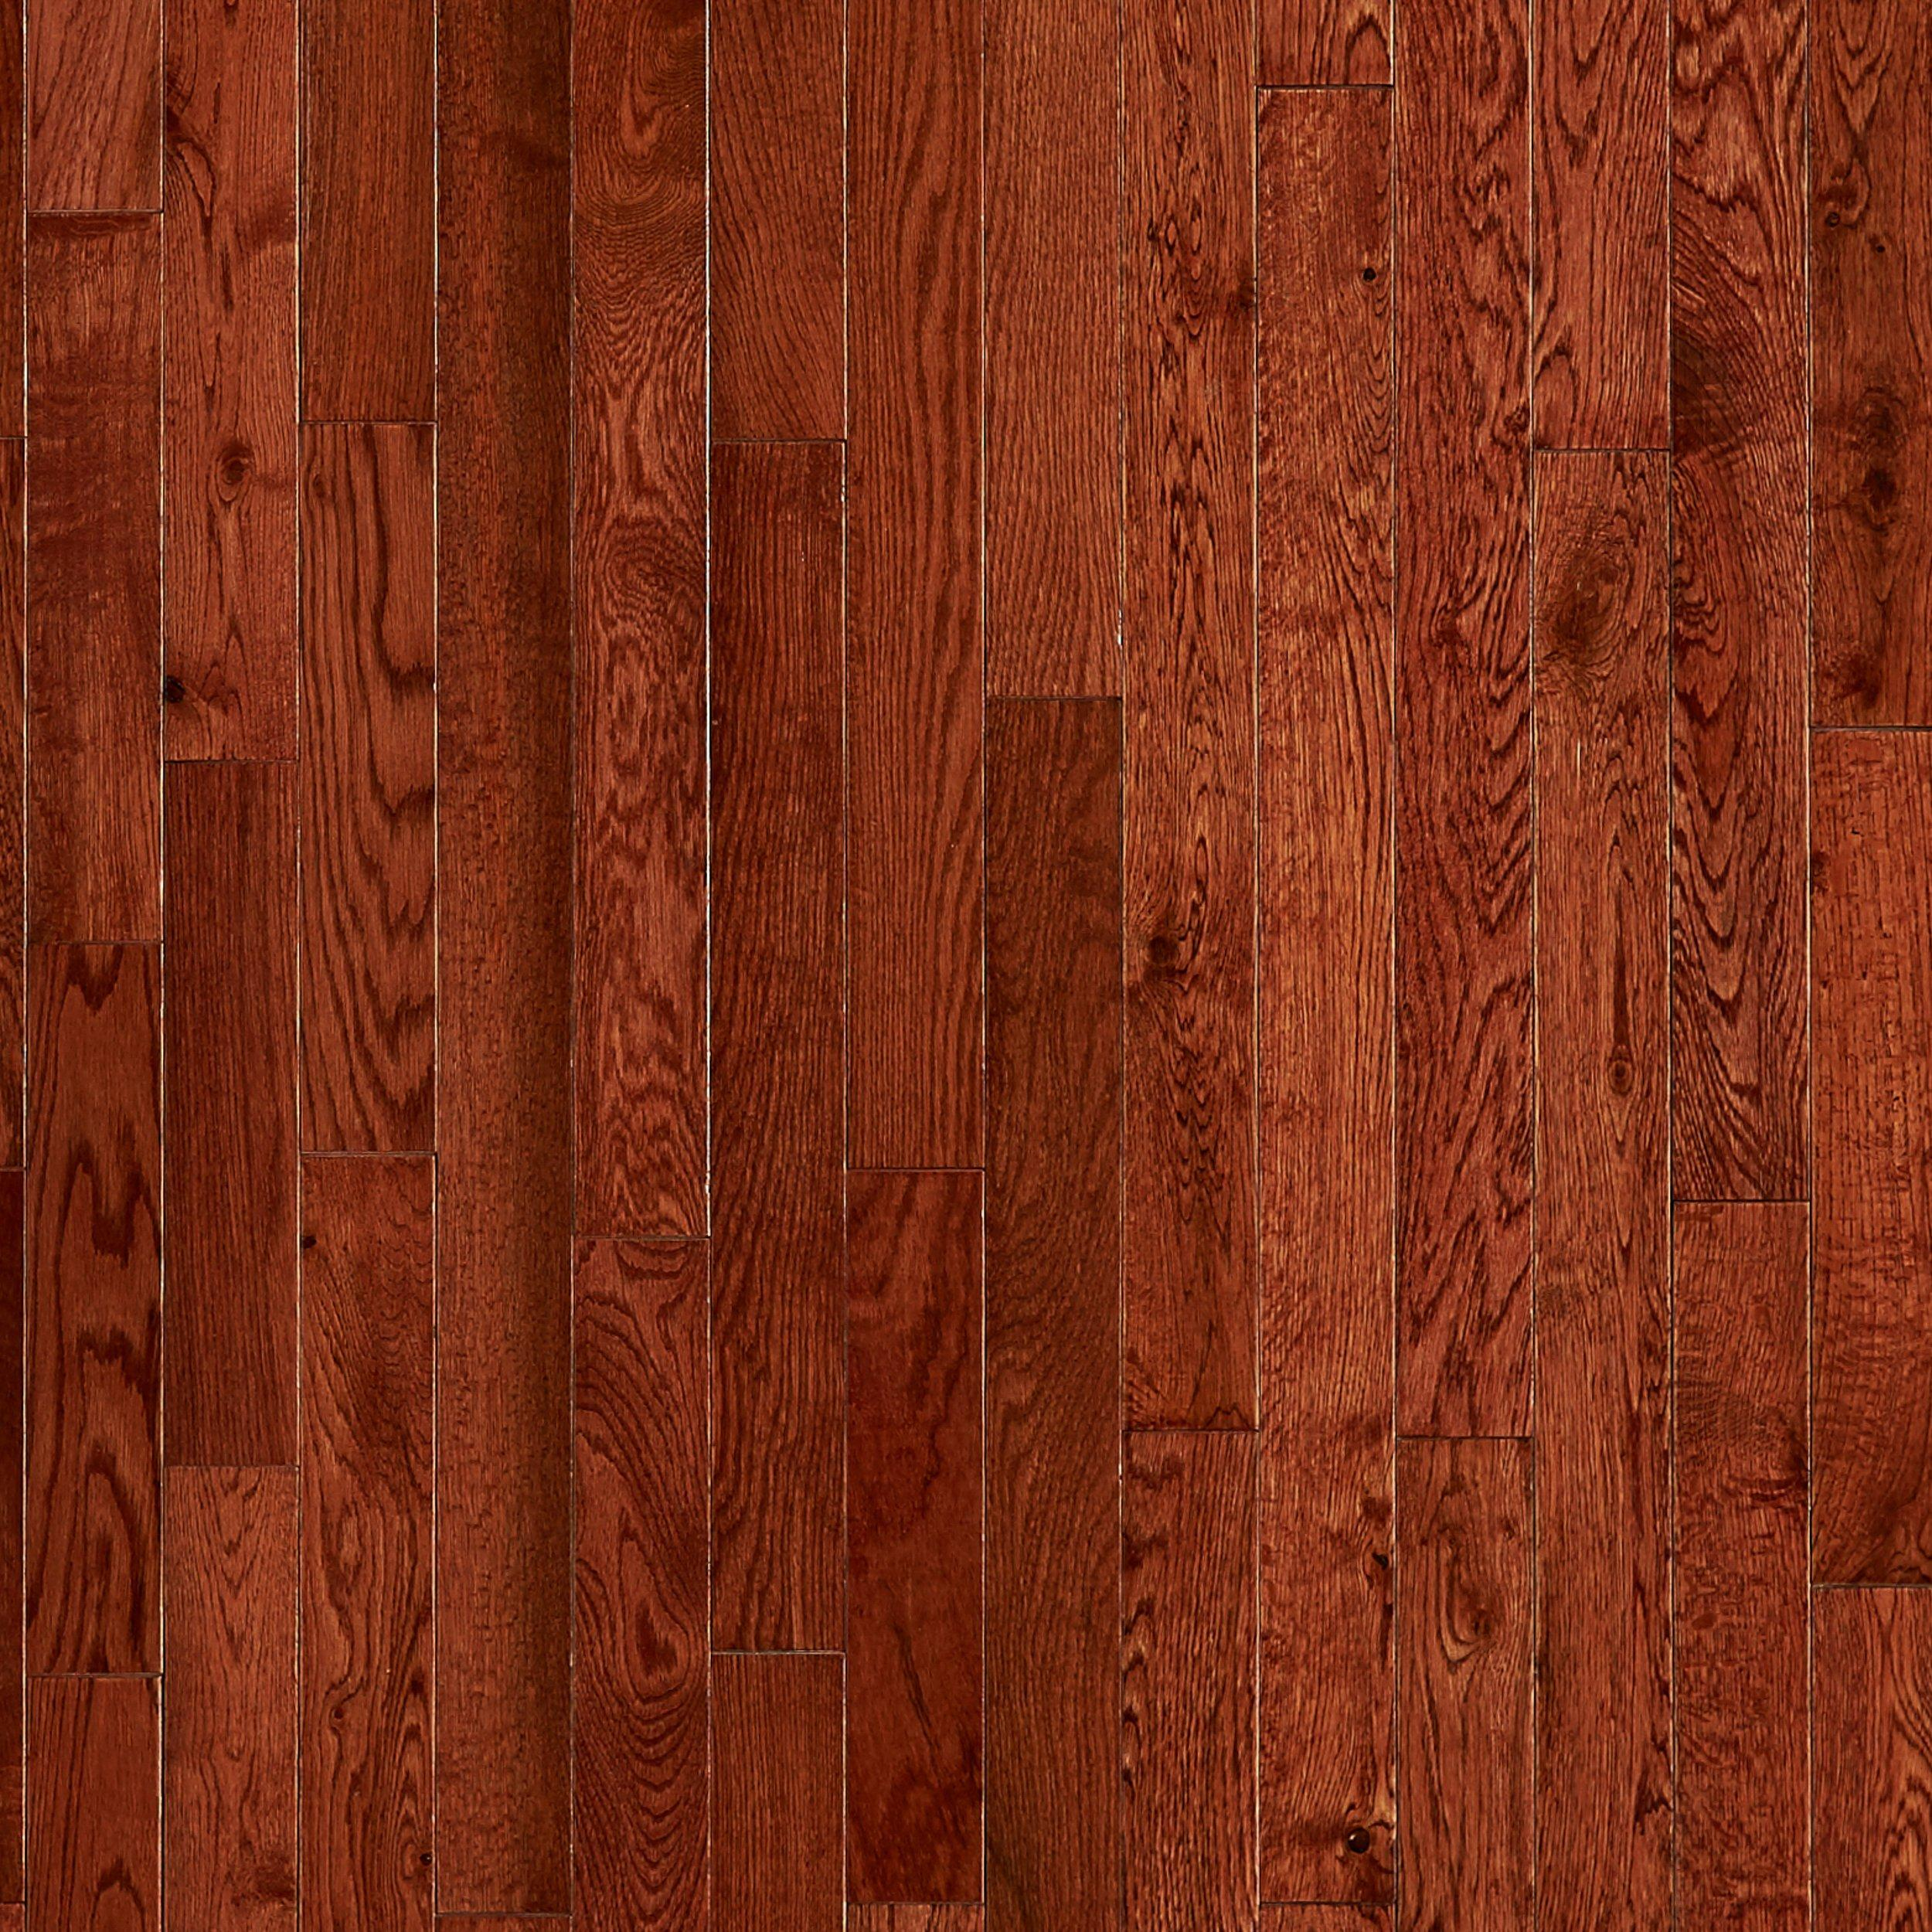 Solid hardwood flooring laminate solid hardwood for Real oak hardwood flooring